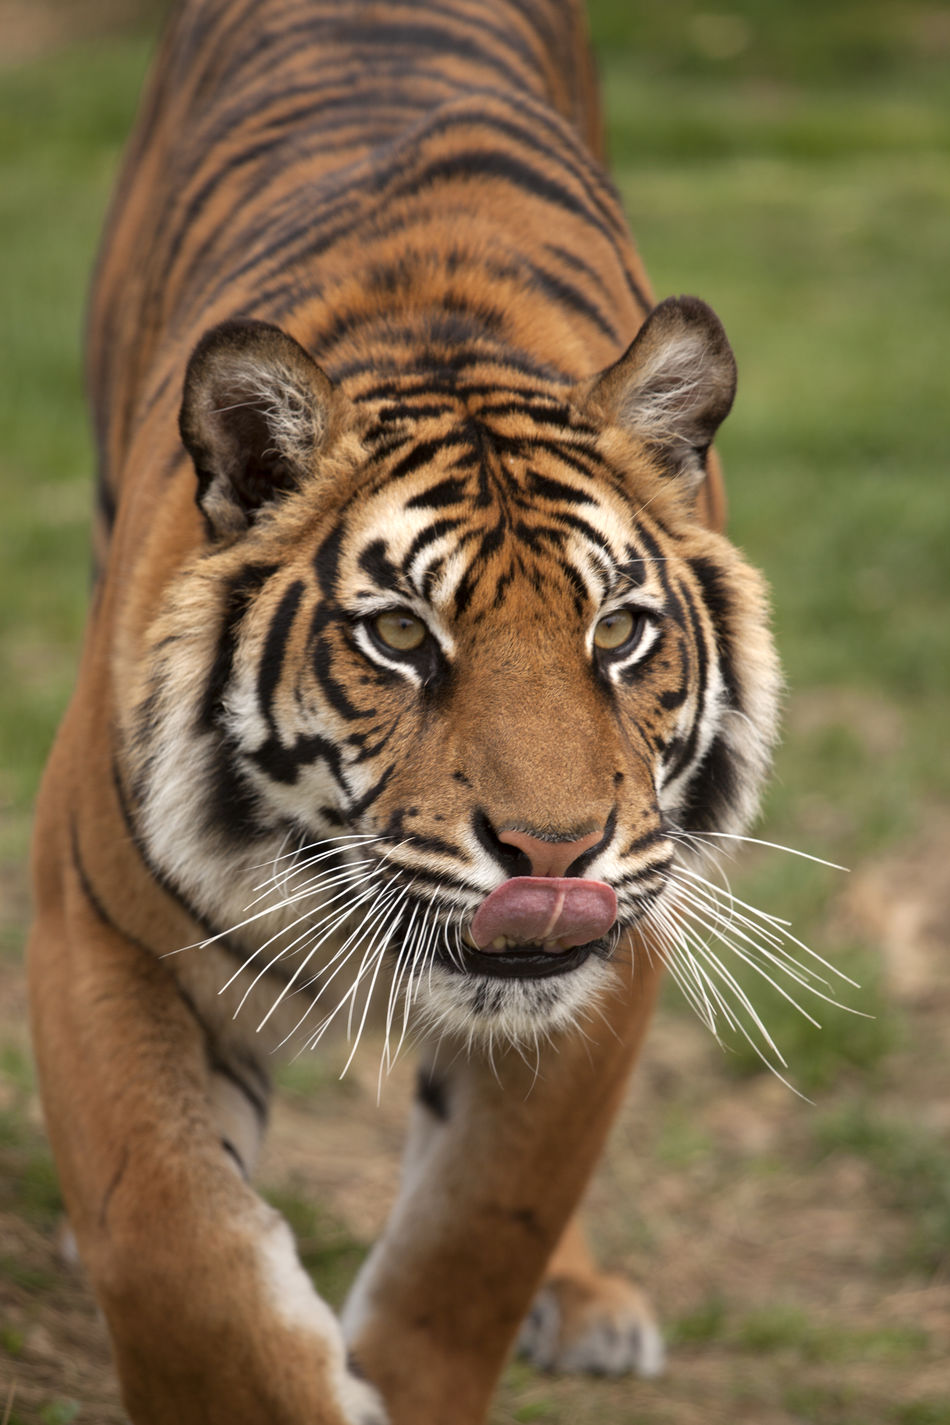 Animal Animal Themes Animal Wildlife Bengal Tigers Dinner Time Focus On Foreground Licking Lips Mammal Nature One Animal Outdoors Tiger Tongue Tongue Out Endangered Species Endangered Animals Endangered